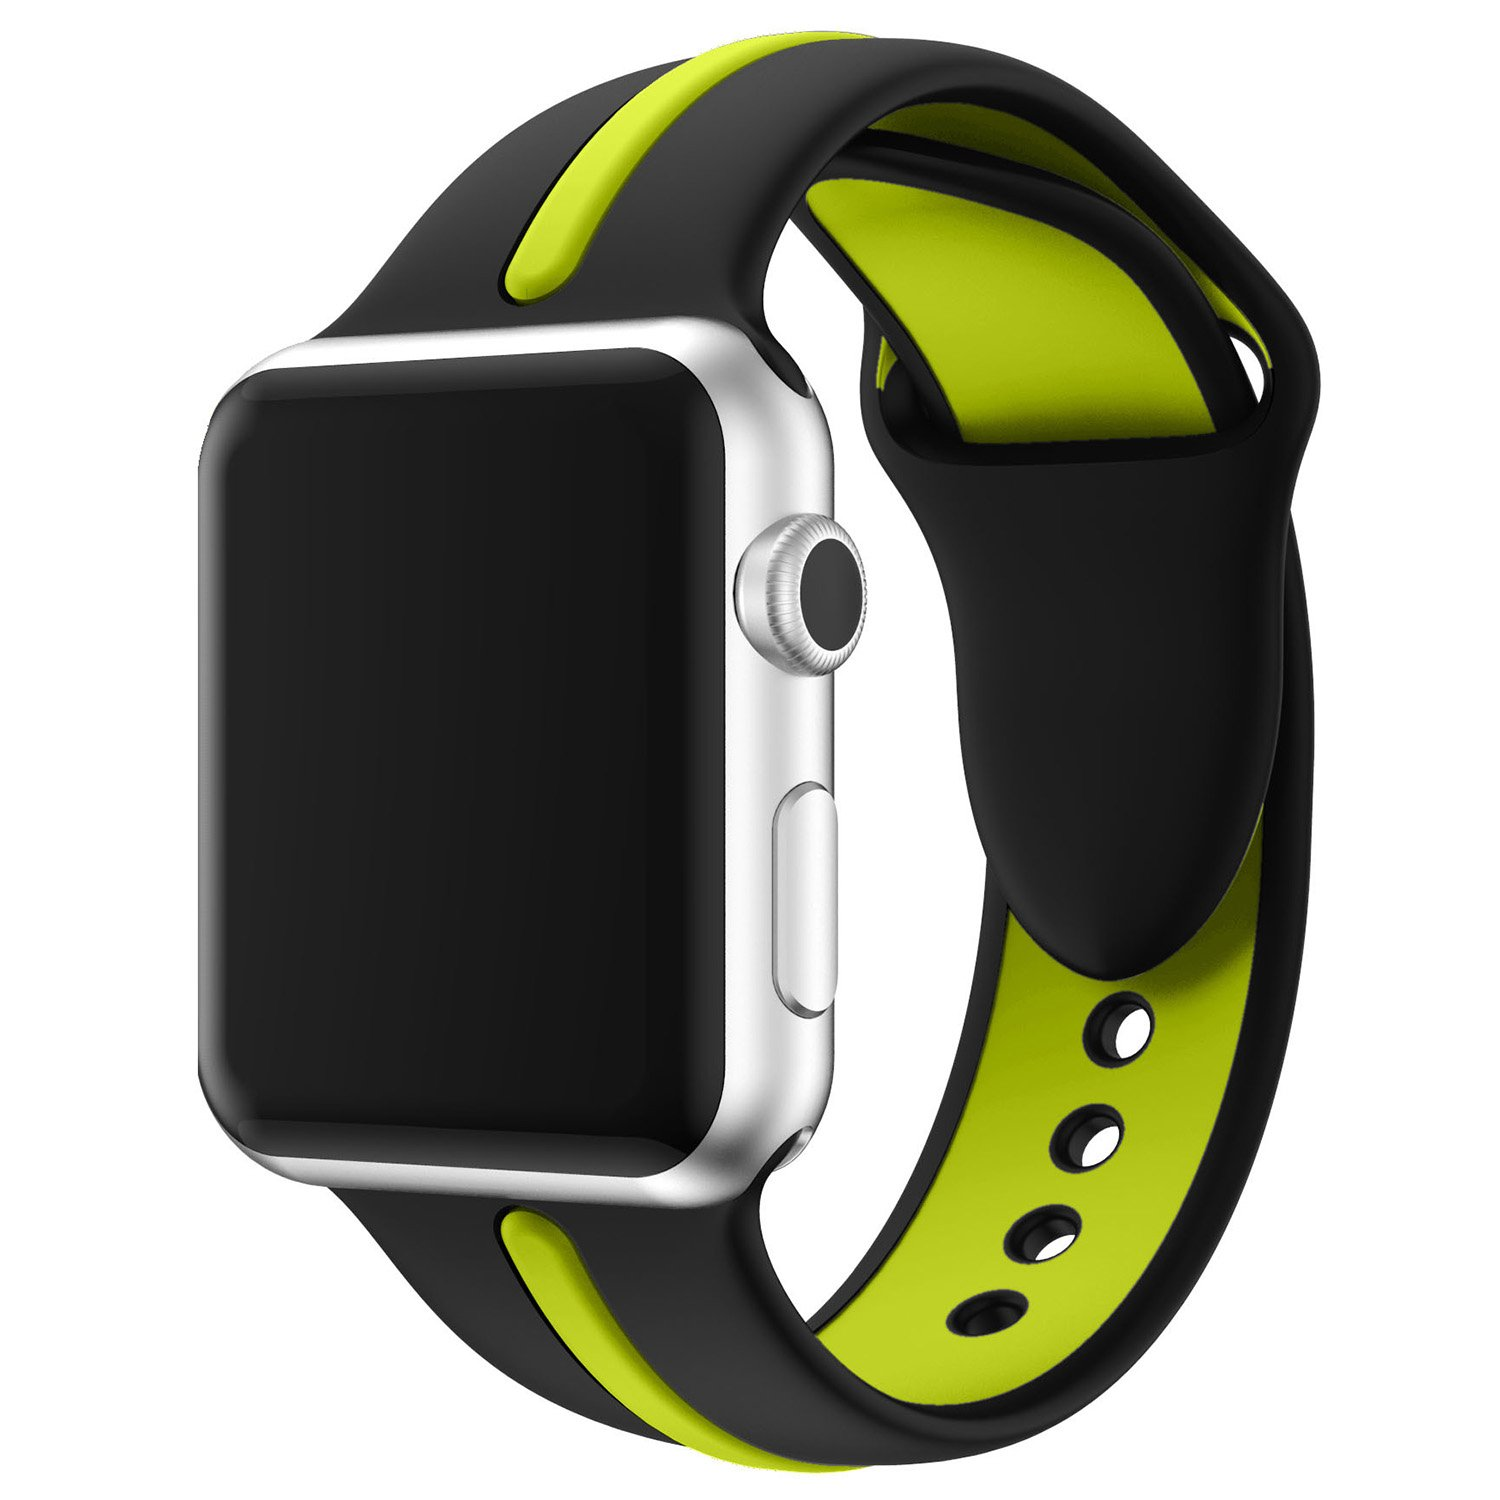 Silicone Apple Watch Band 38mm 42mm, ZXK CO Soft Rubber Sport Replacement Wrist Strap for Apple Watch Series 3 Series 2 Series 1 Nike+ Sport Edition, 70 Variants